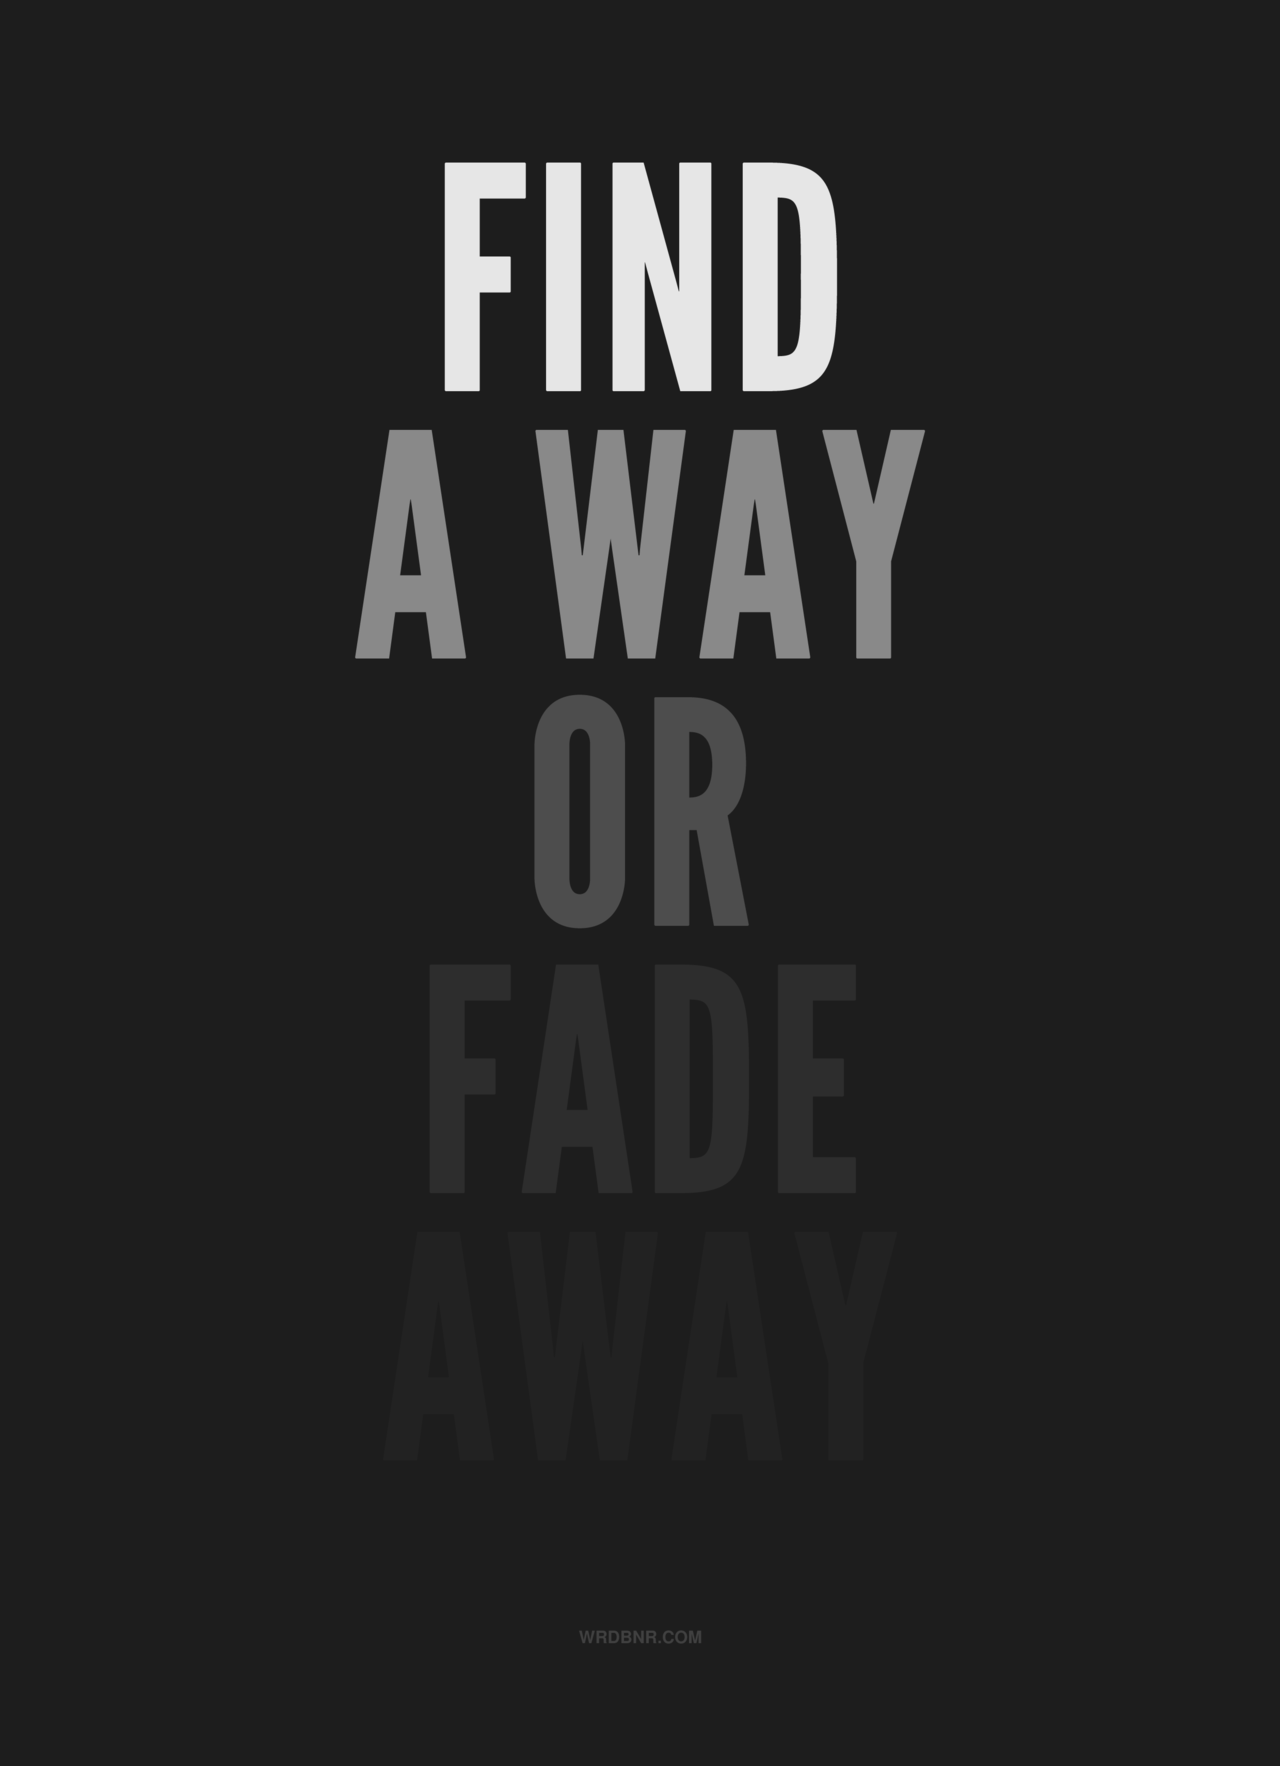 Quotes about Fade (5 quotes)